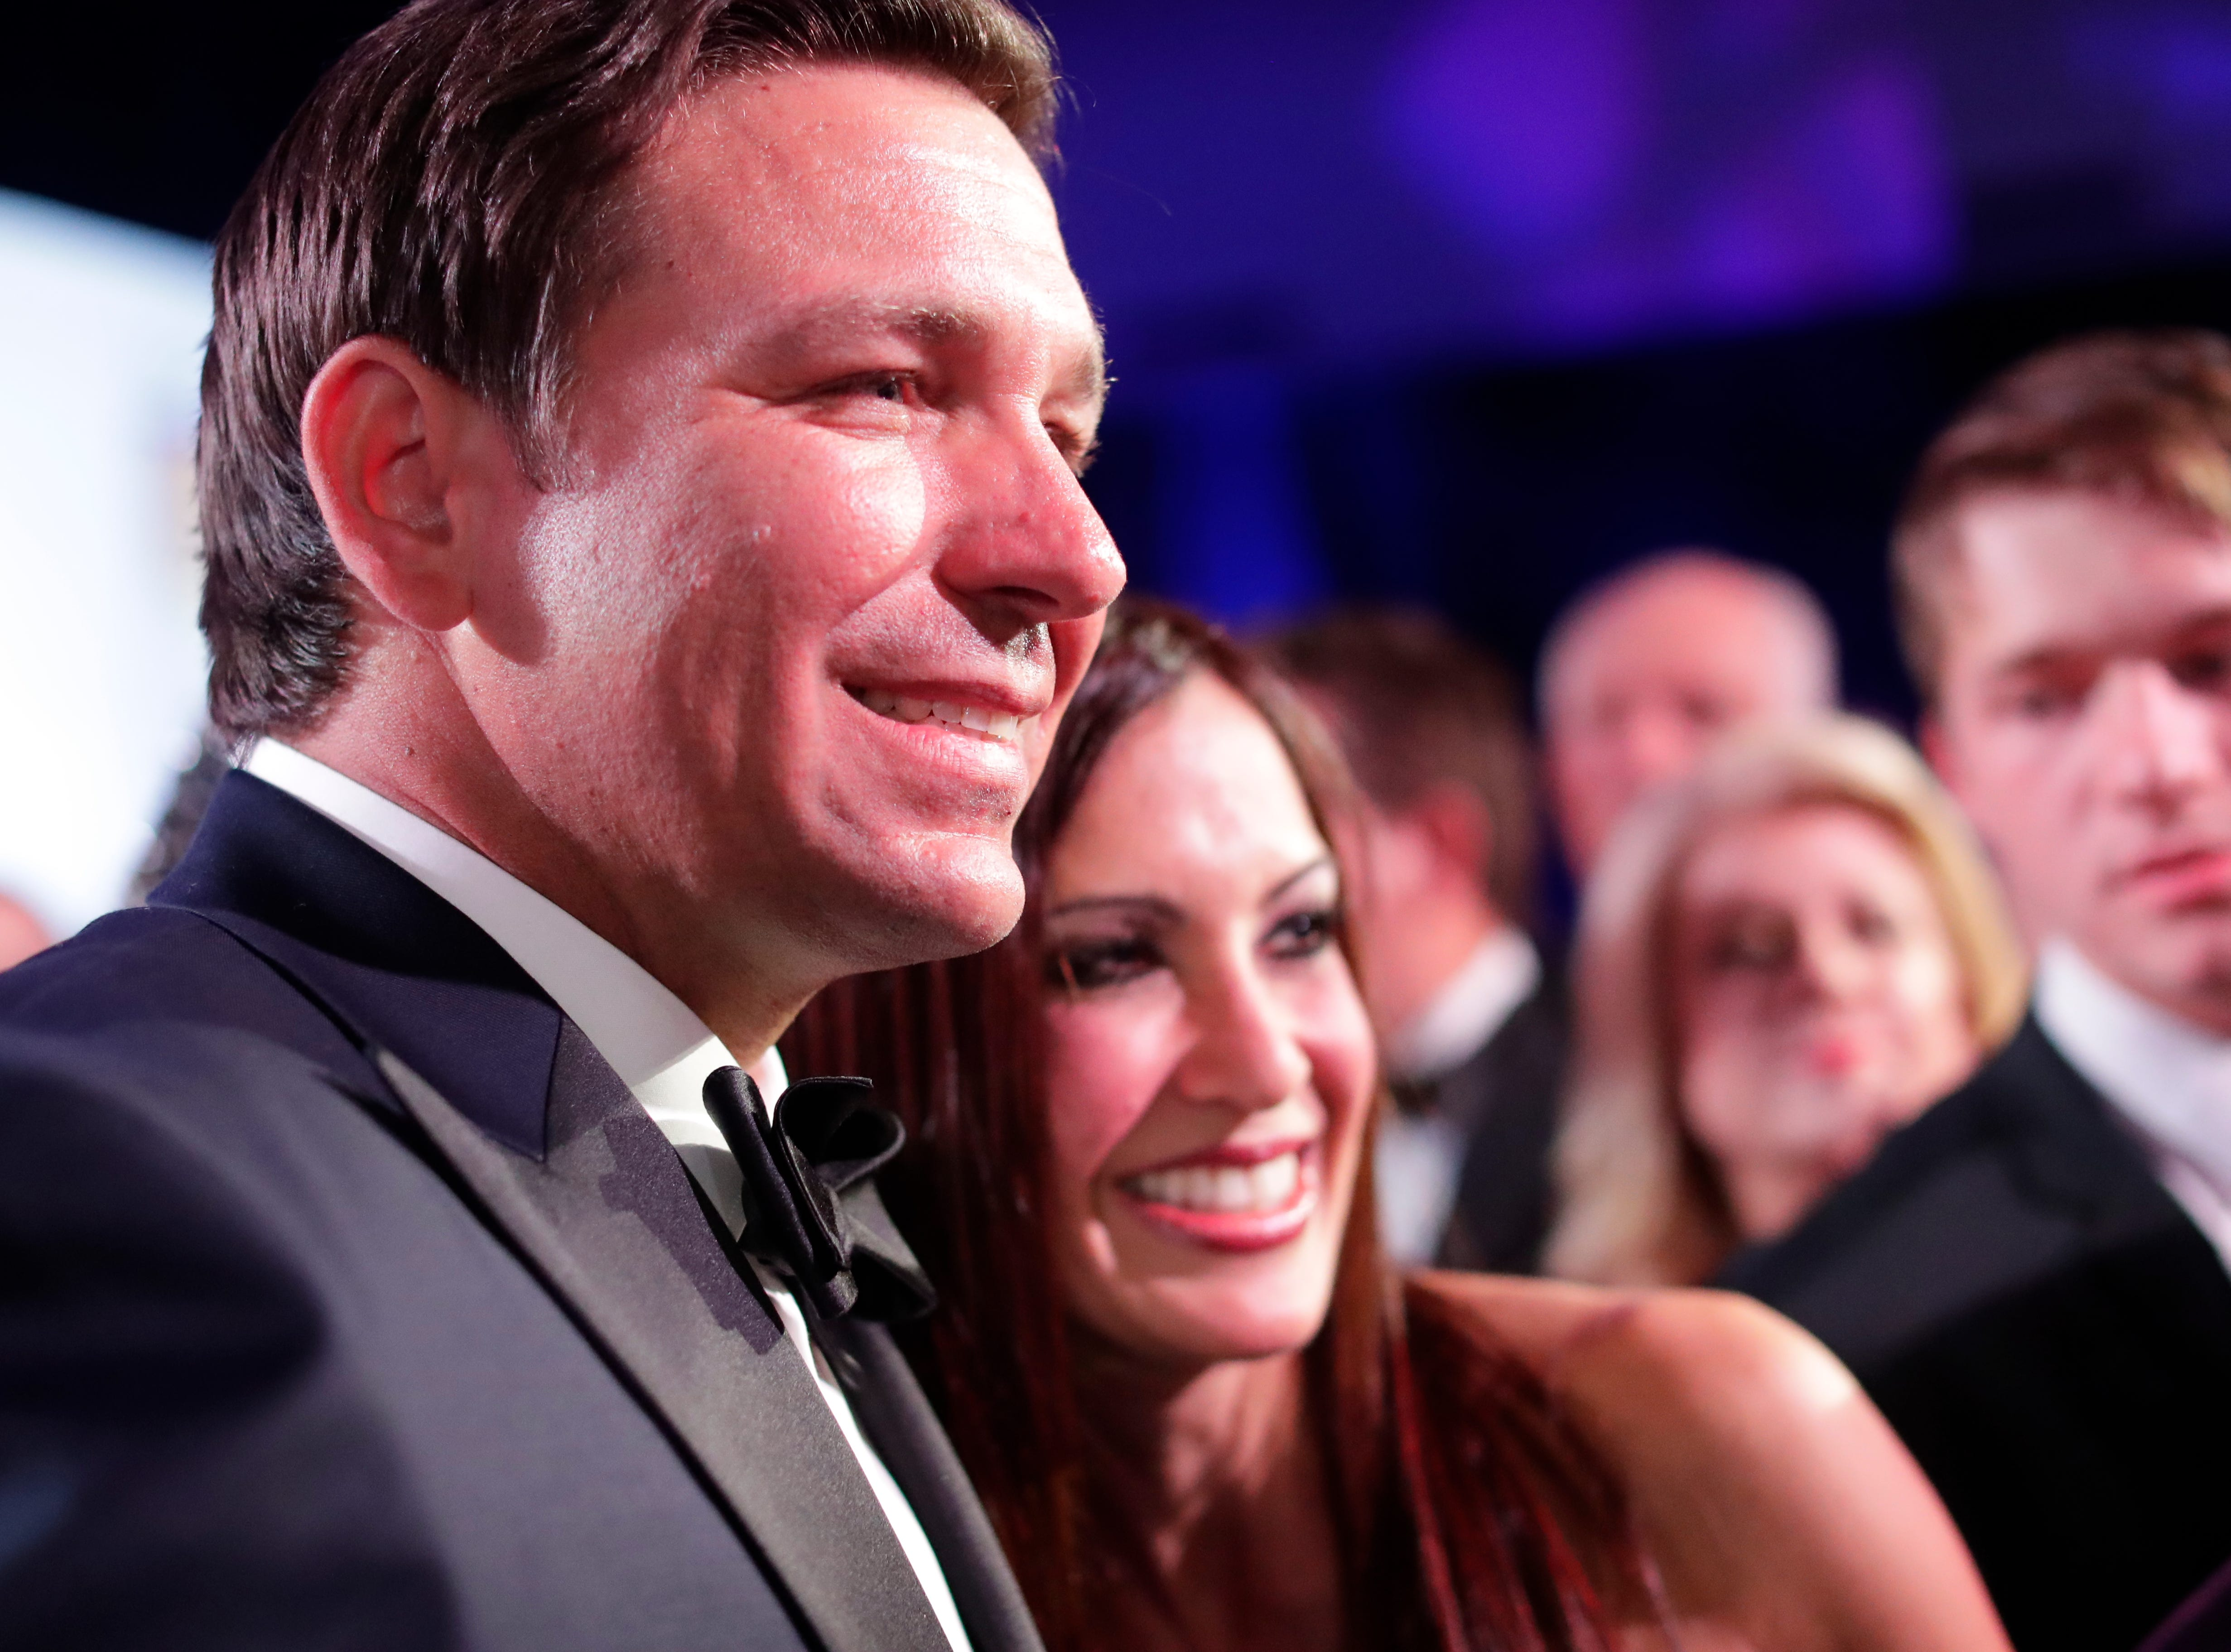 Hundreds of guests from all over Florida attend Florida's 46th Governor's Inaugural Ball at the Tucker Civic Center, Tuesday, Jan. 8, 2019. Gov. Ron DeSantis poses for a photo with a guest.